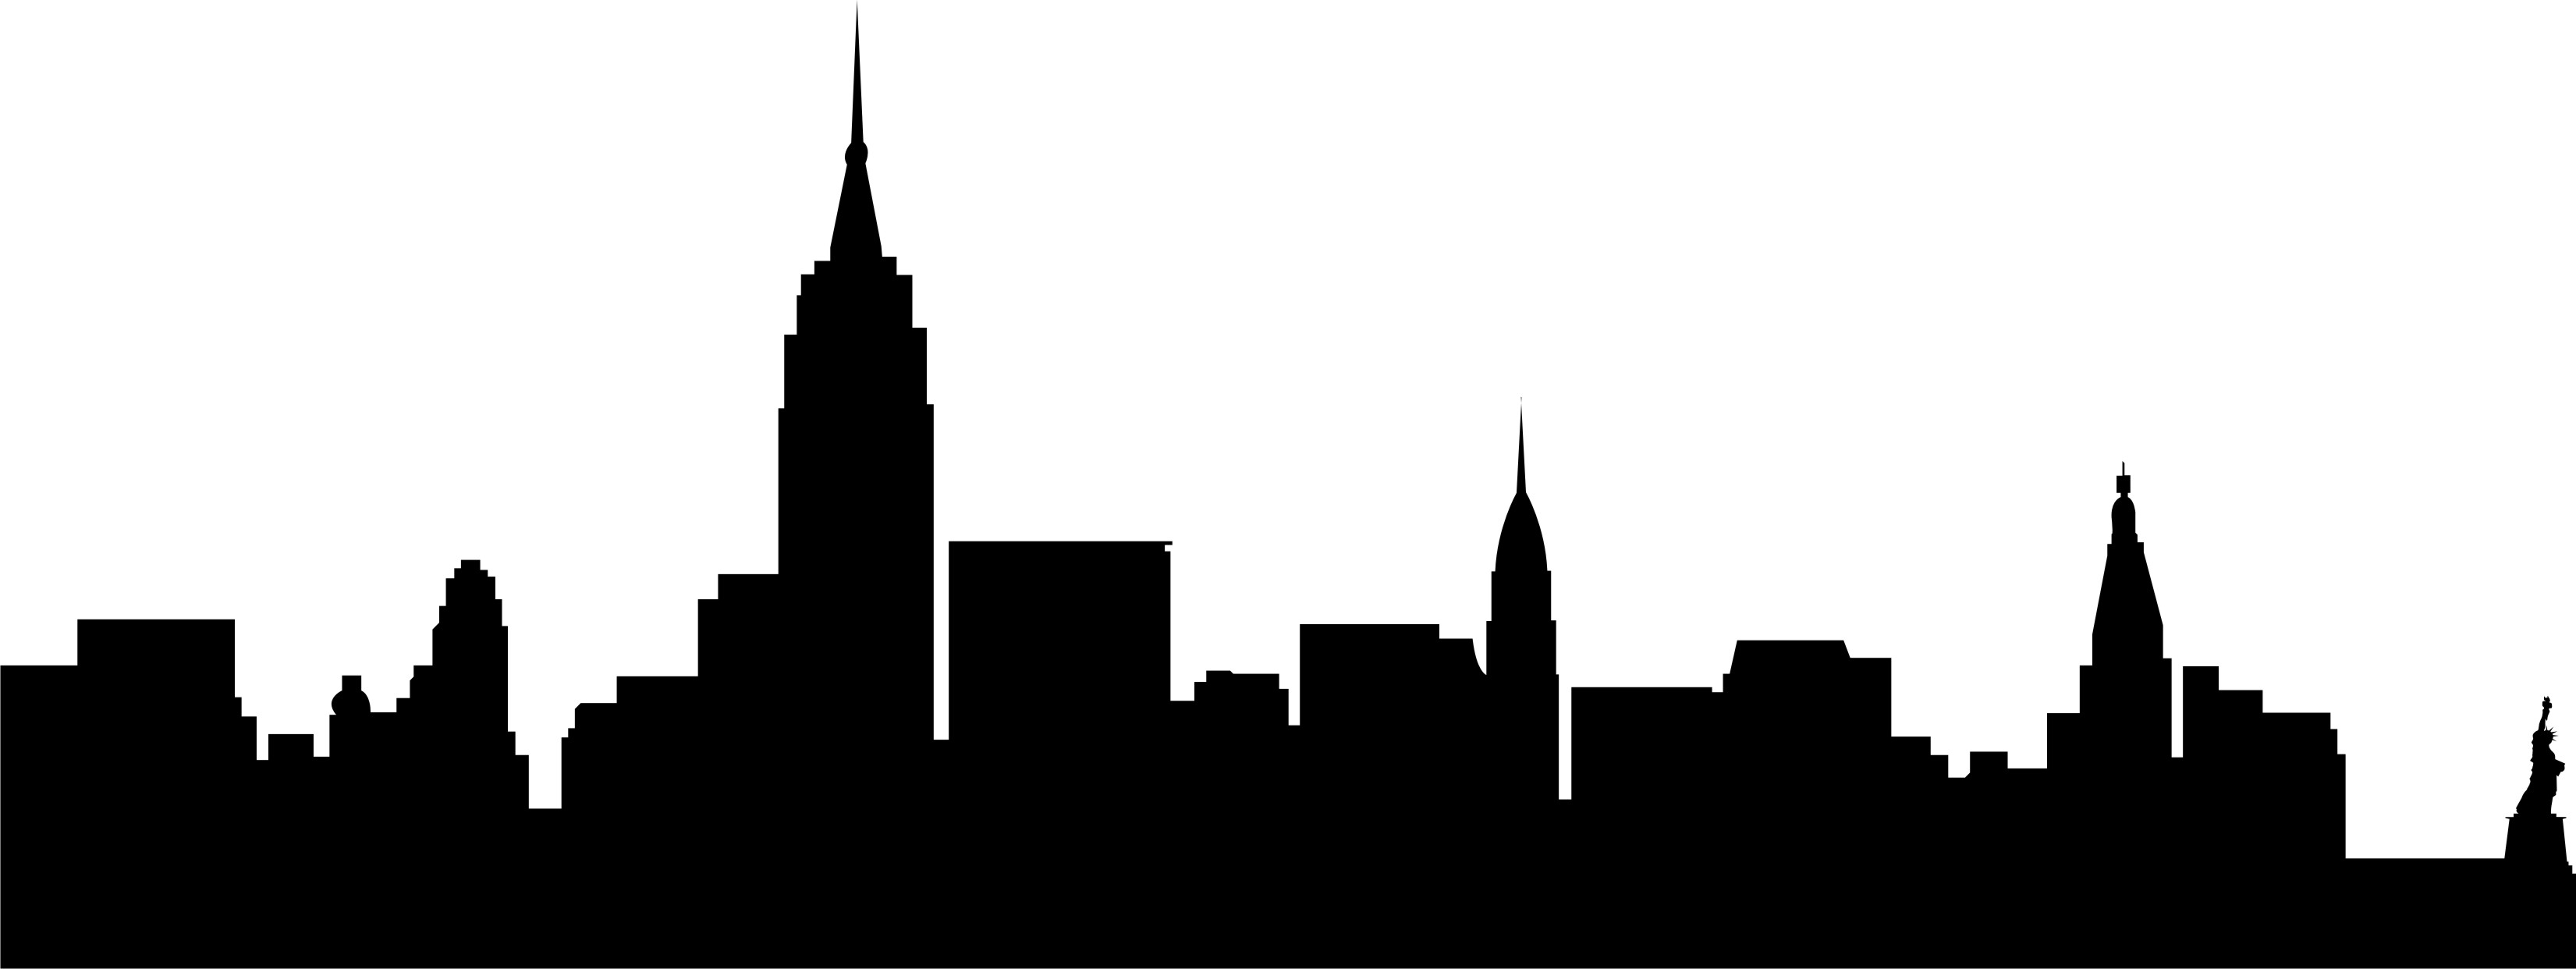 Cityscape clipart #15, Download drawings